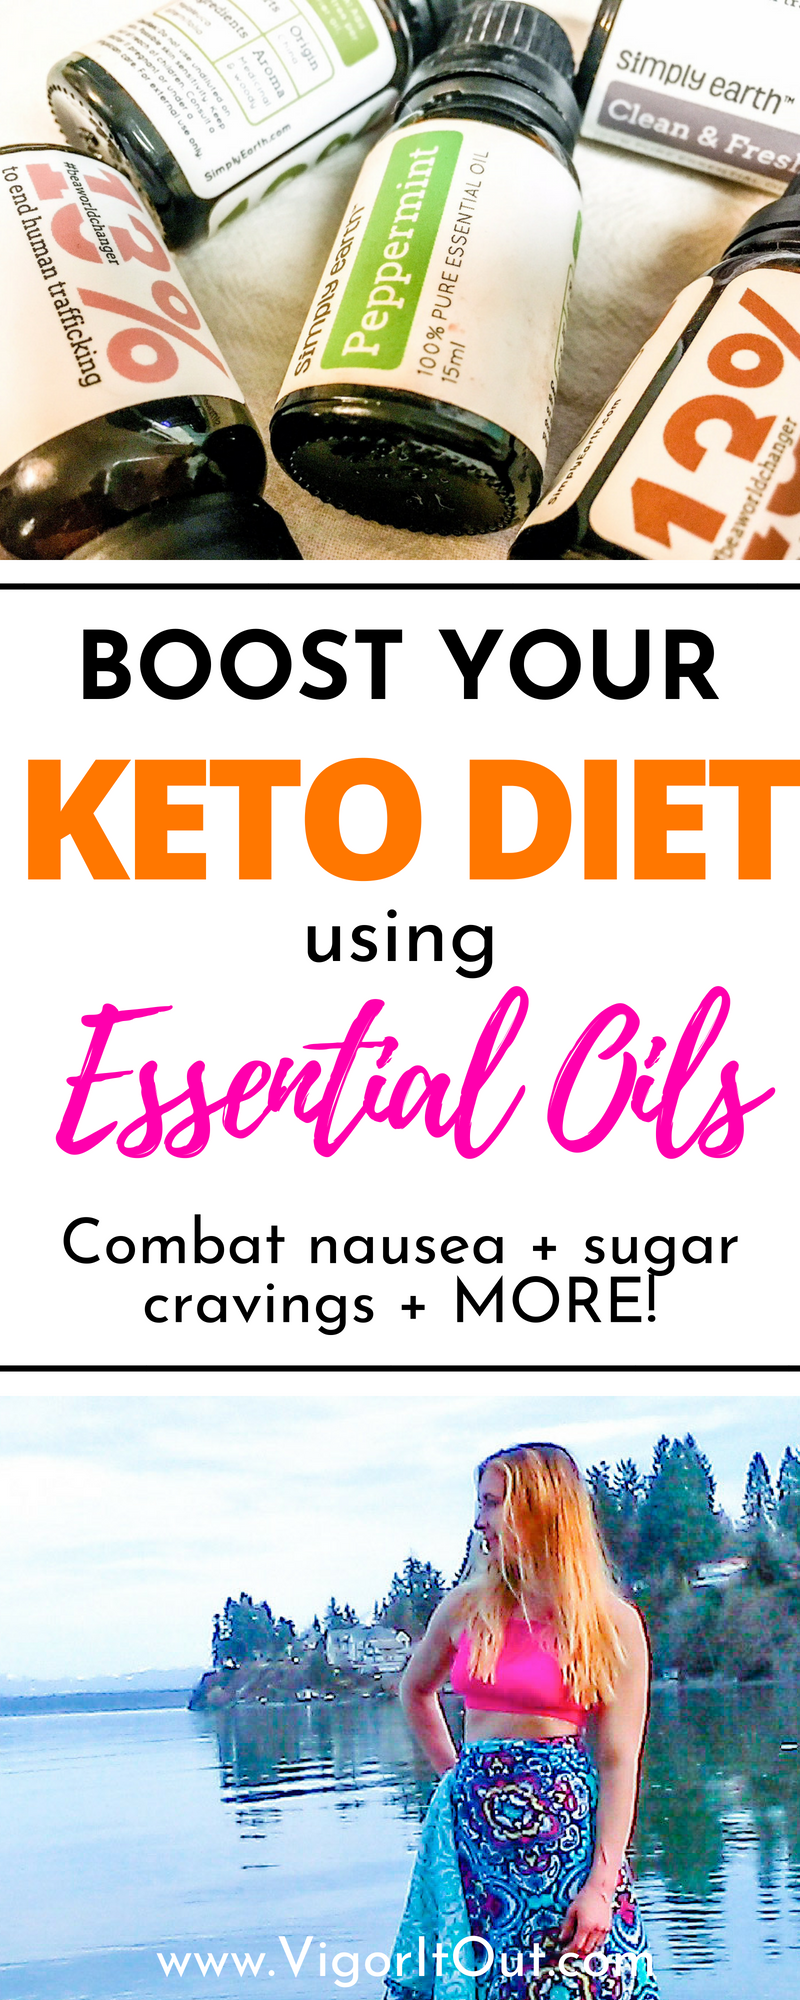 essential oils and keto diet